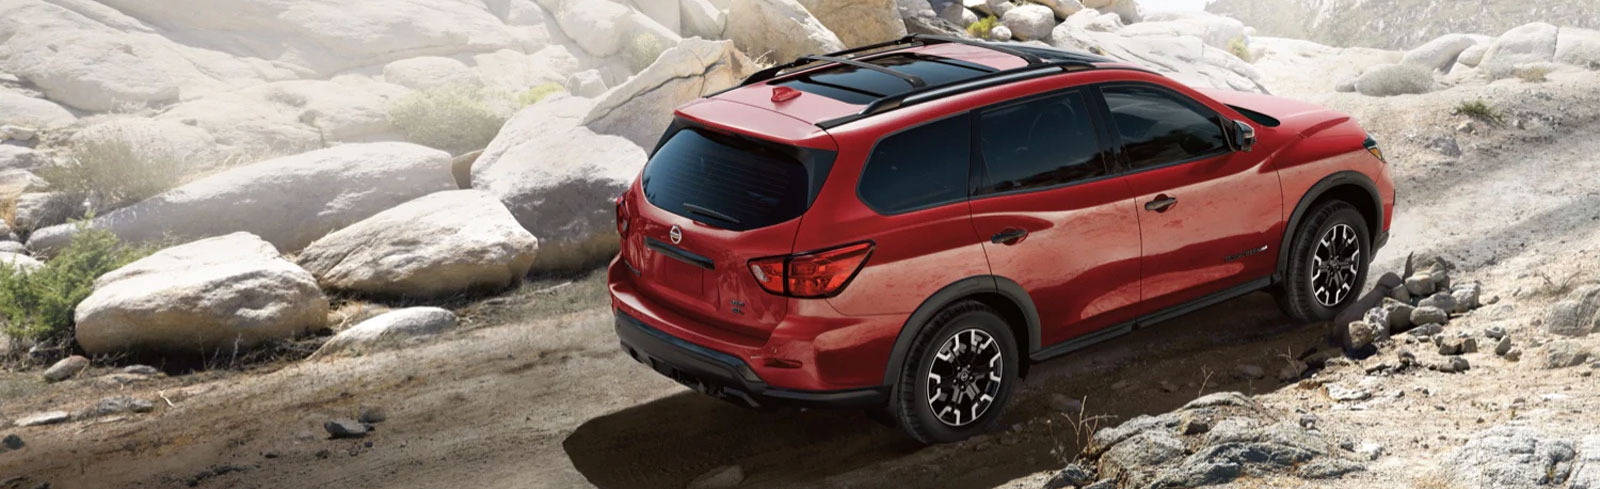 2020 Nissan Pathfinder For Sale Near Salem, NH